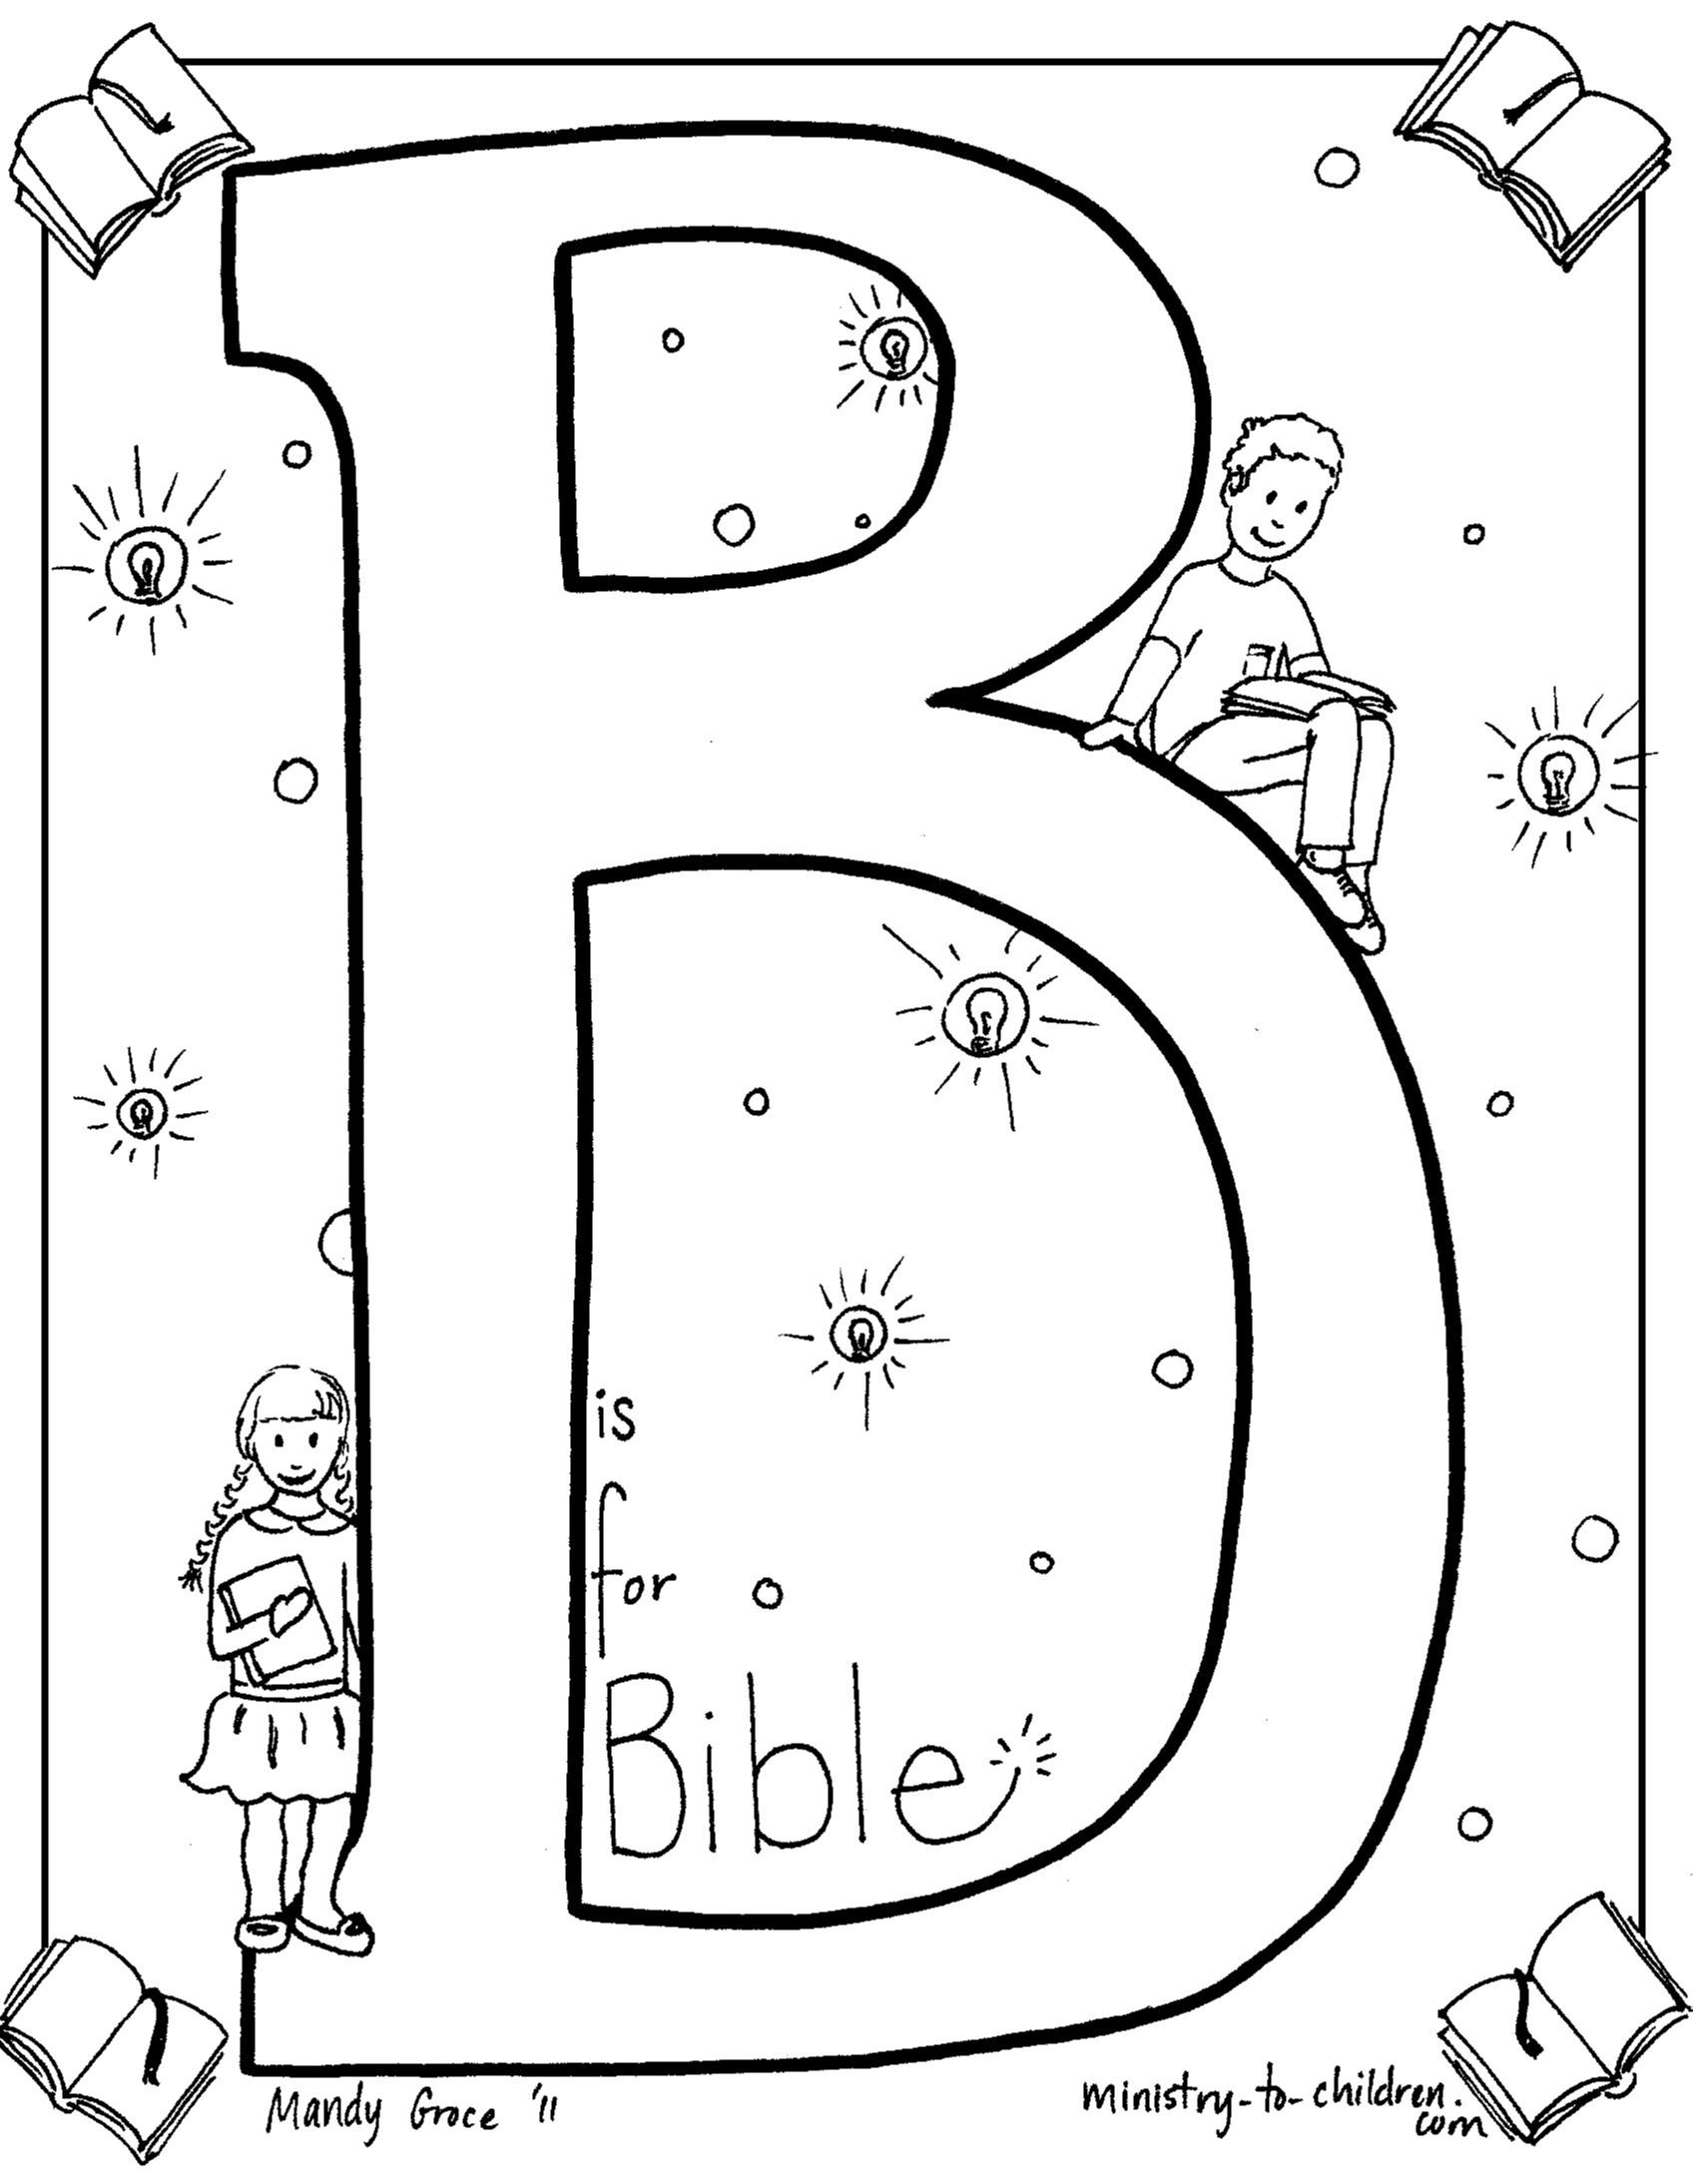 Coloring Book Pages Bible  Faithful obe nce 18 Bible coloring pages clip art